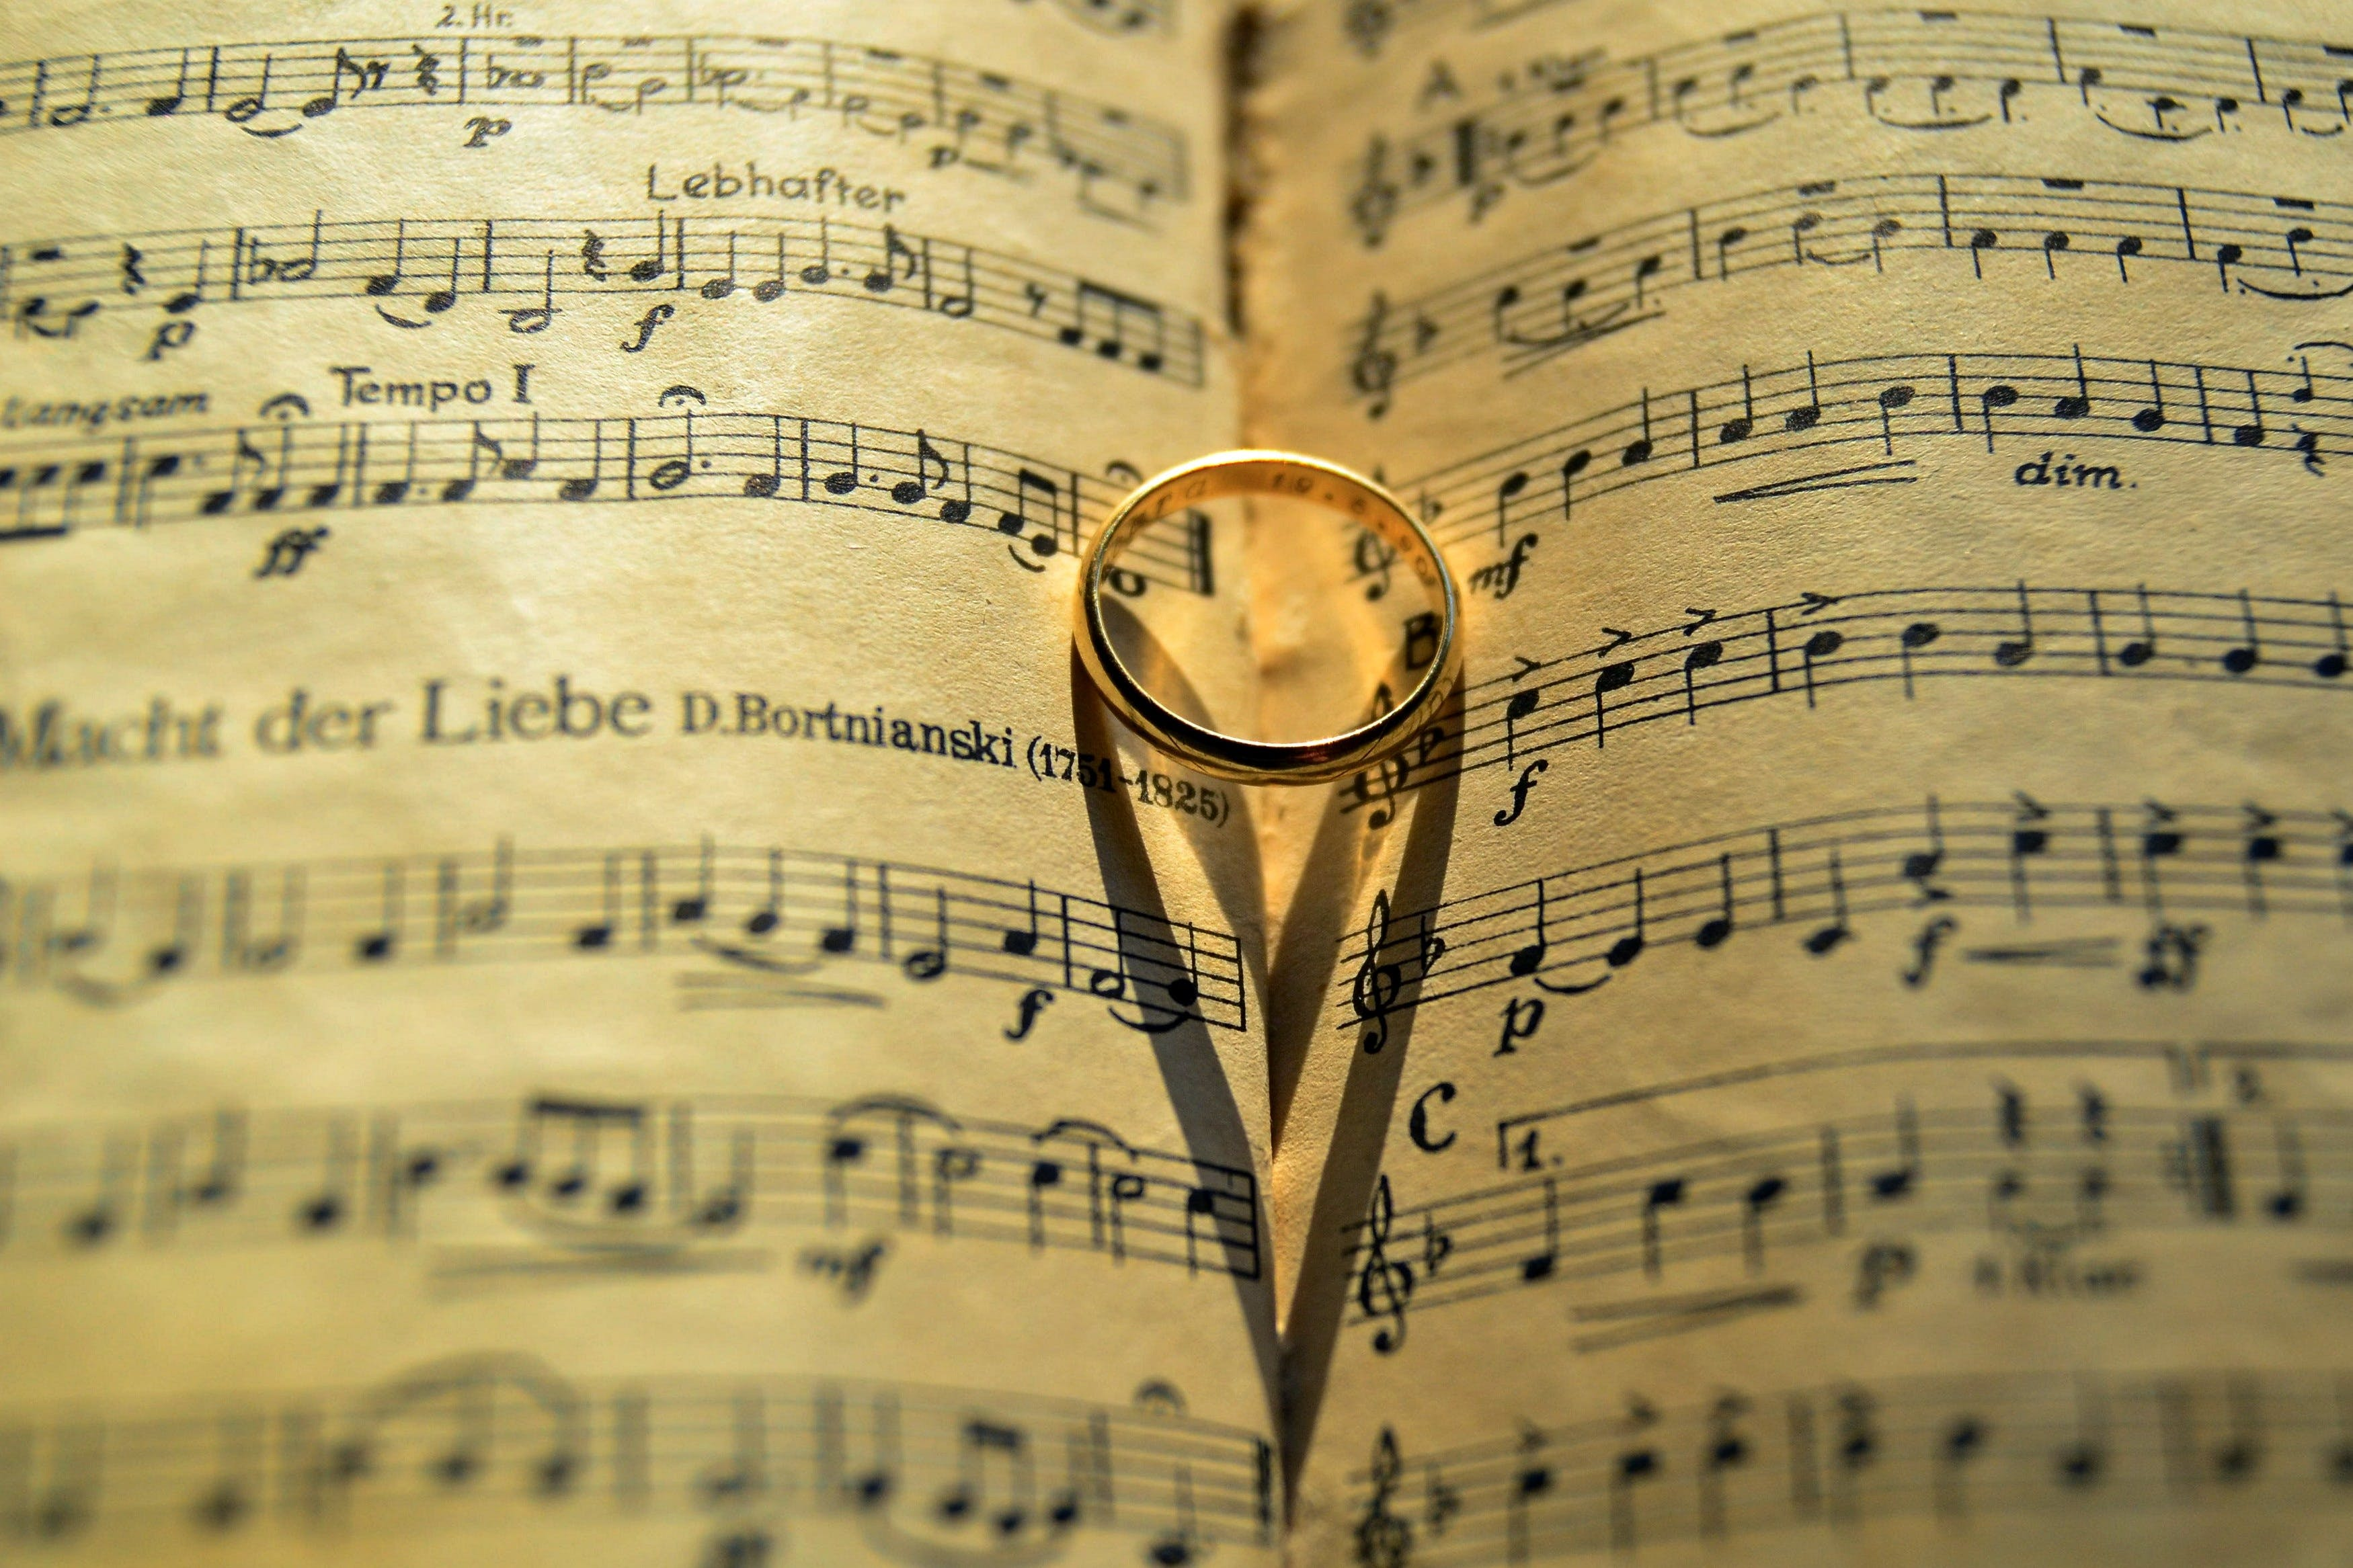 Gold-colored Ring on Musical Note